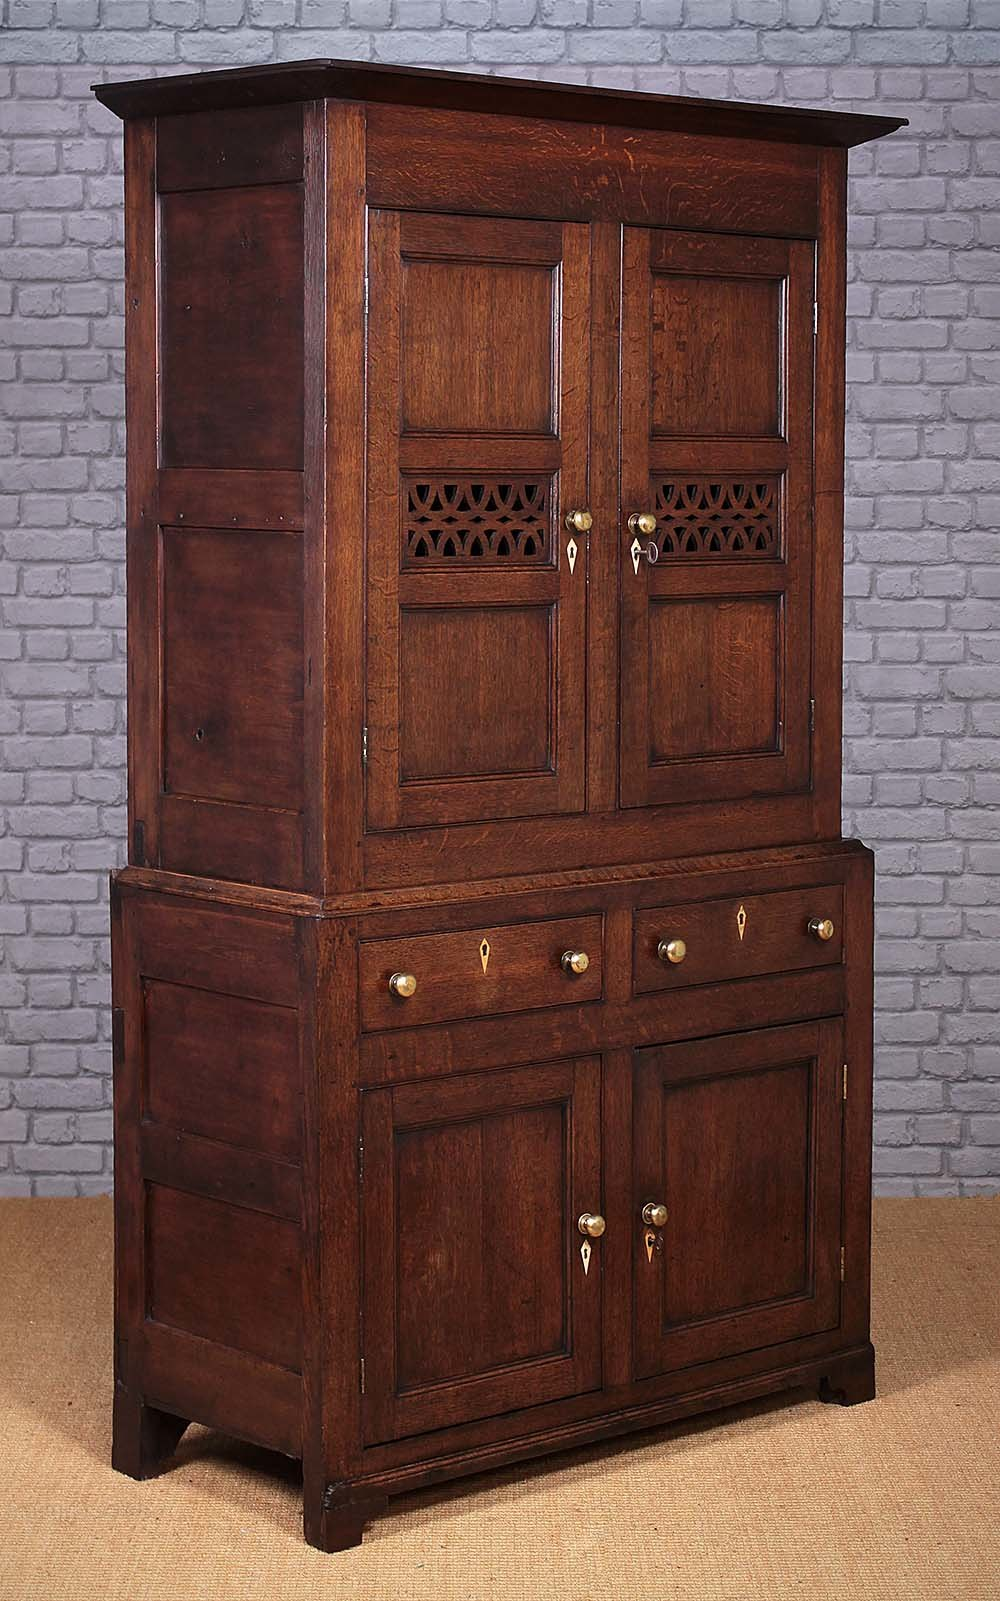 cupboards for used sale cabinet cerused cupboard vintage style collection antique art mont display deco oak james chairish cabinets china